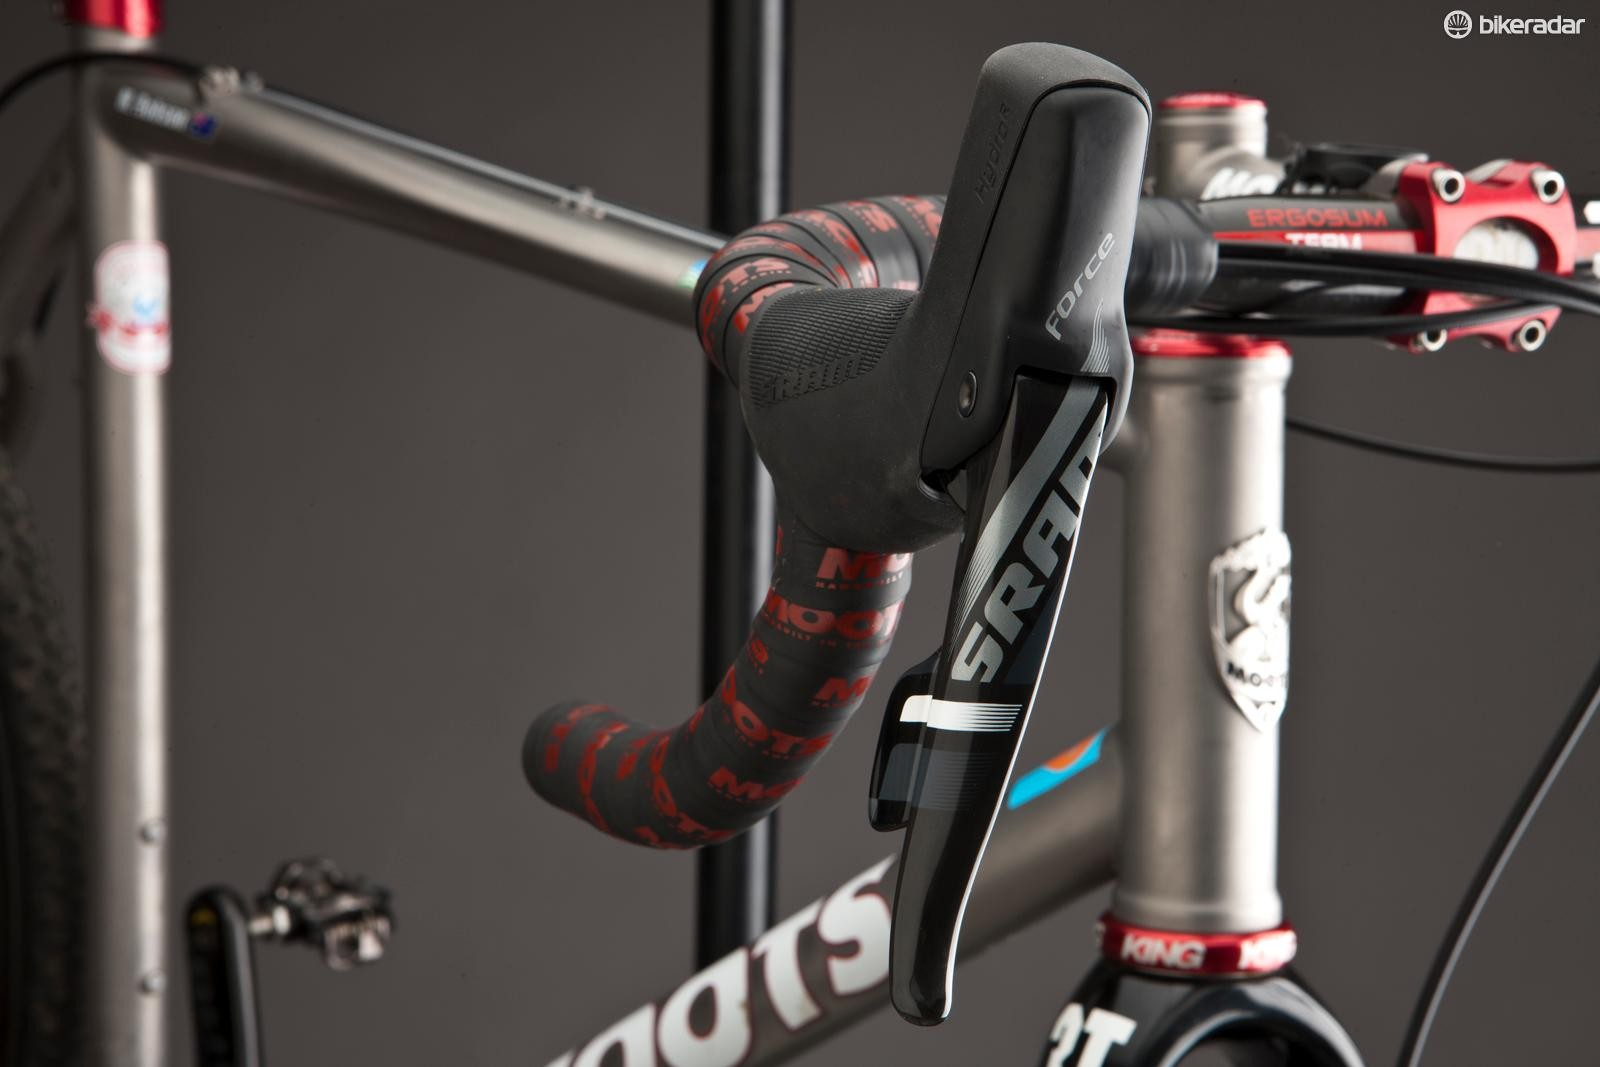 CX1 features the new and dramatically improved brake/shift lever that's a breeze to bleed and works flawlessly